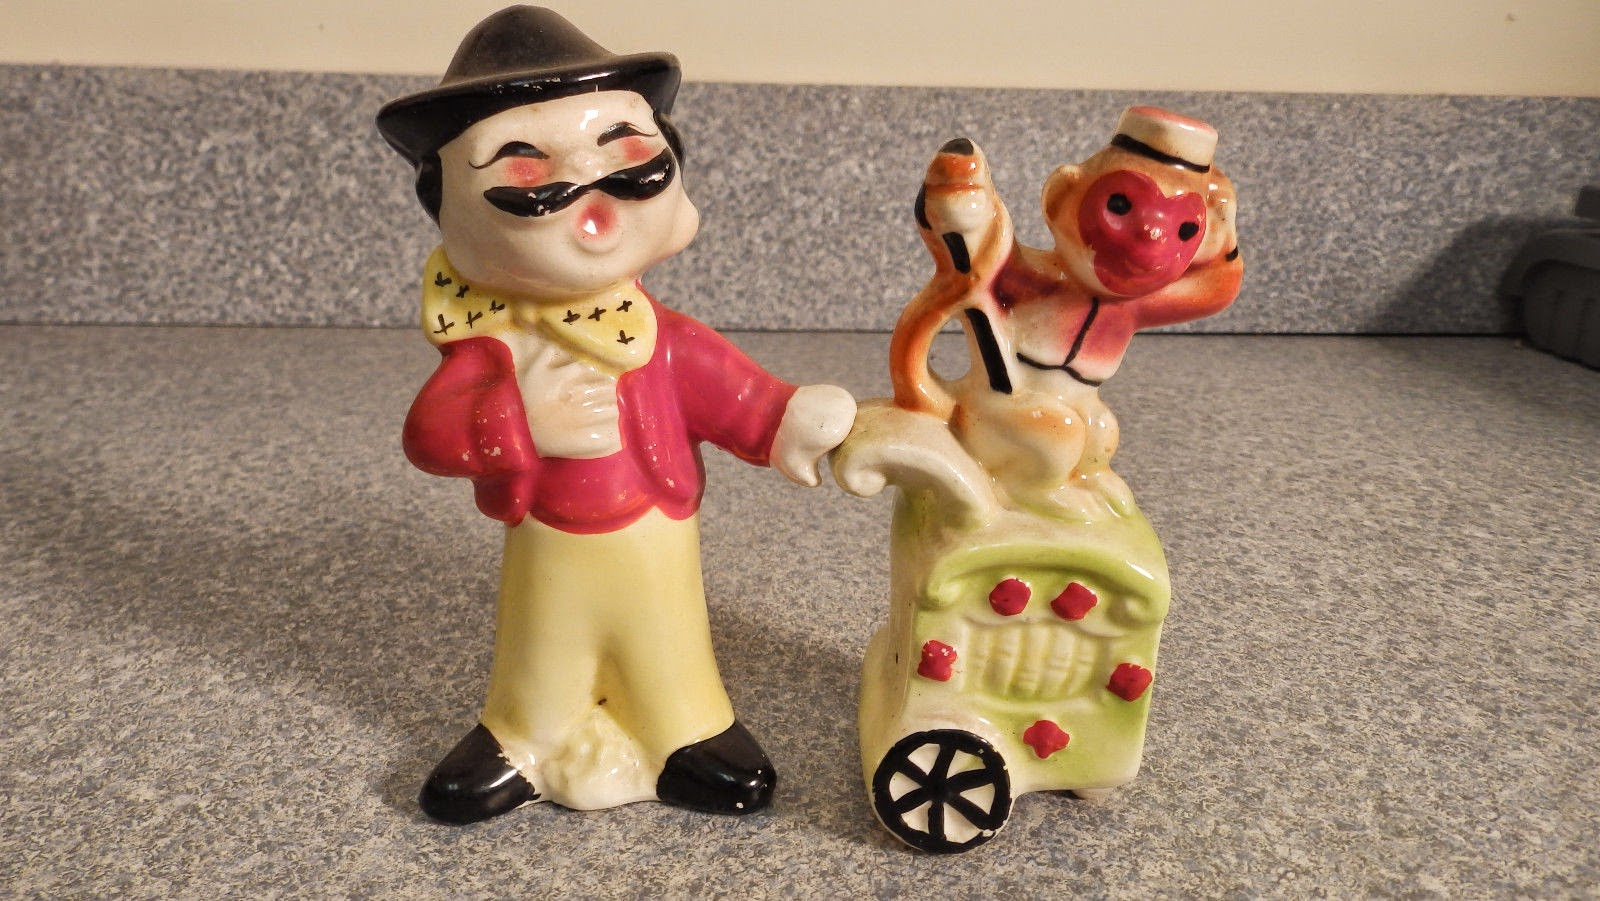 http://www.ebay.com/itm/vintage-salt-pepper-shaker-Organ-Grinder-and-Monkey-/321689588053?pt=LH_DefaultDomain_0&hash=item4ae6319155